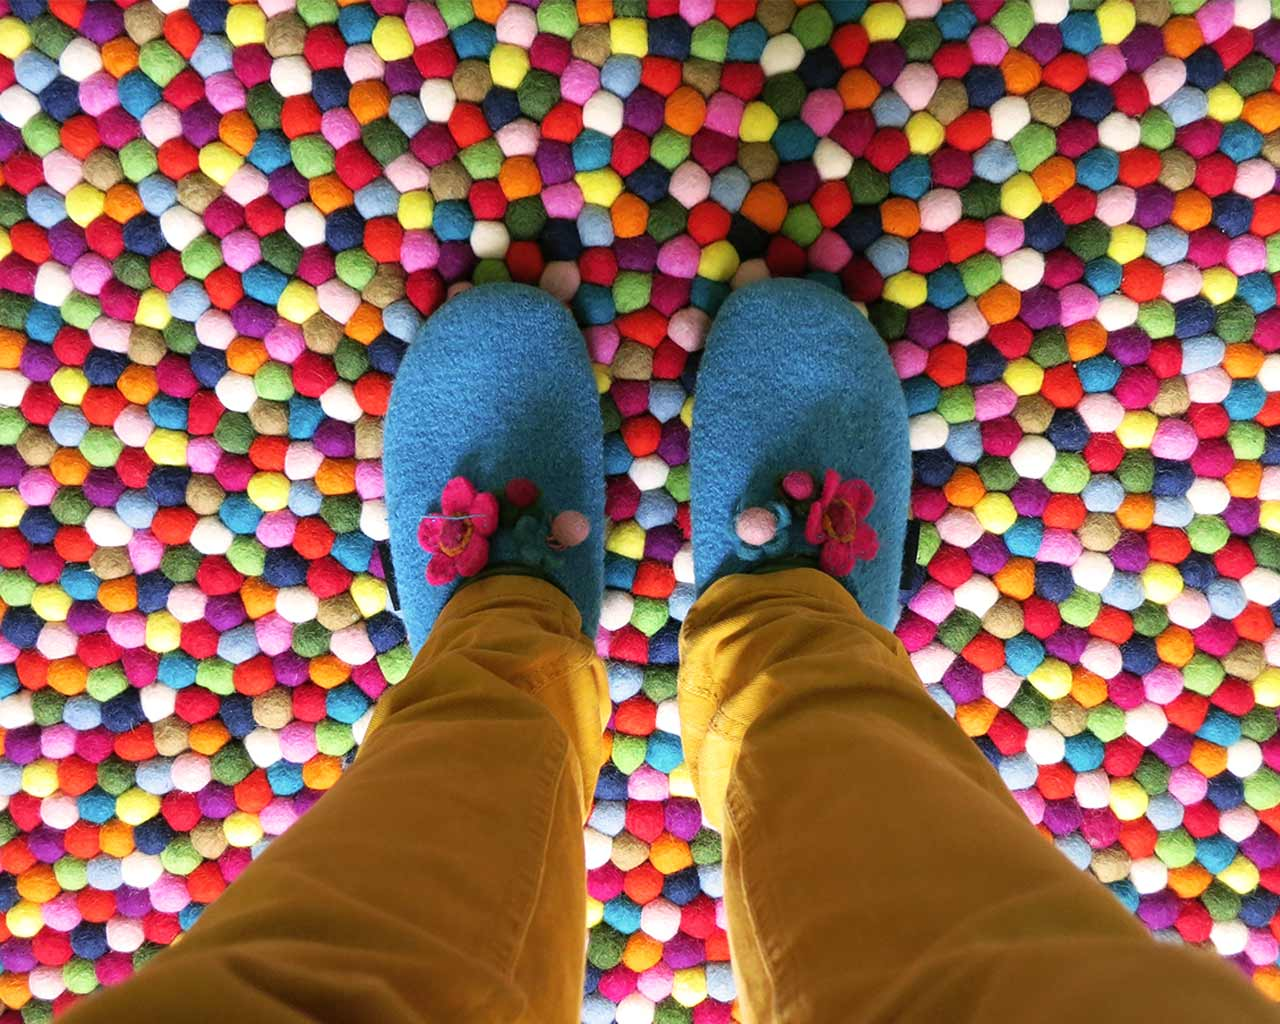 blue slippers pinocchio felt balls carpet